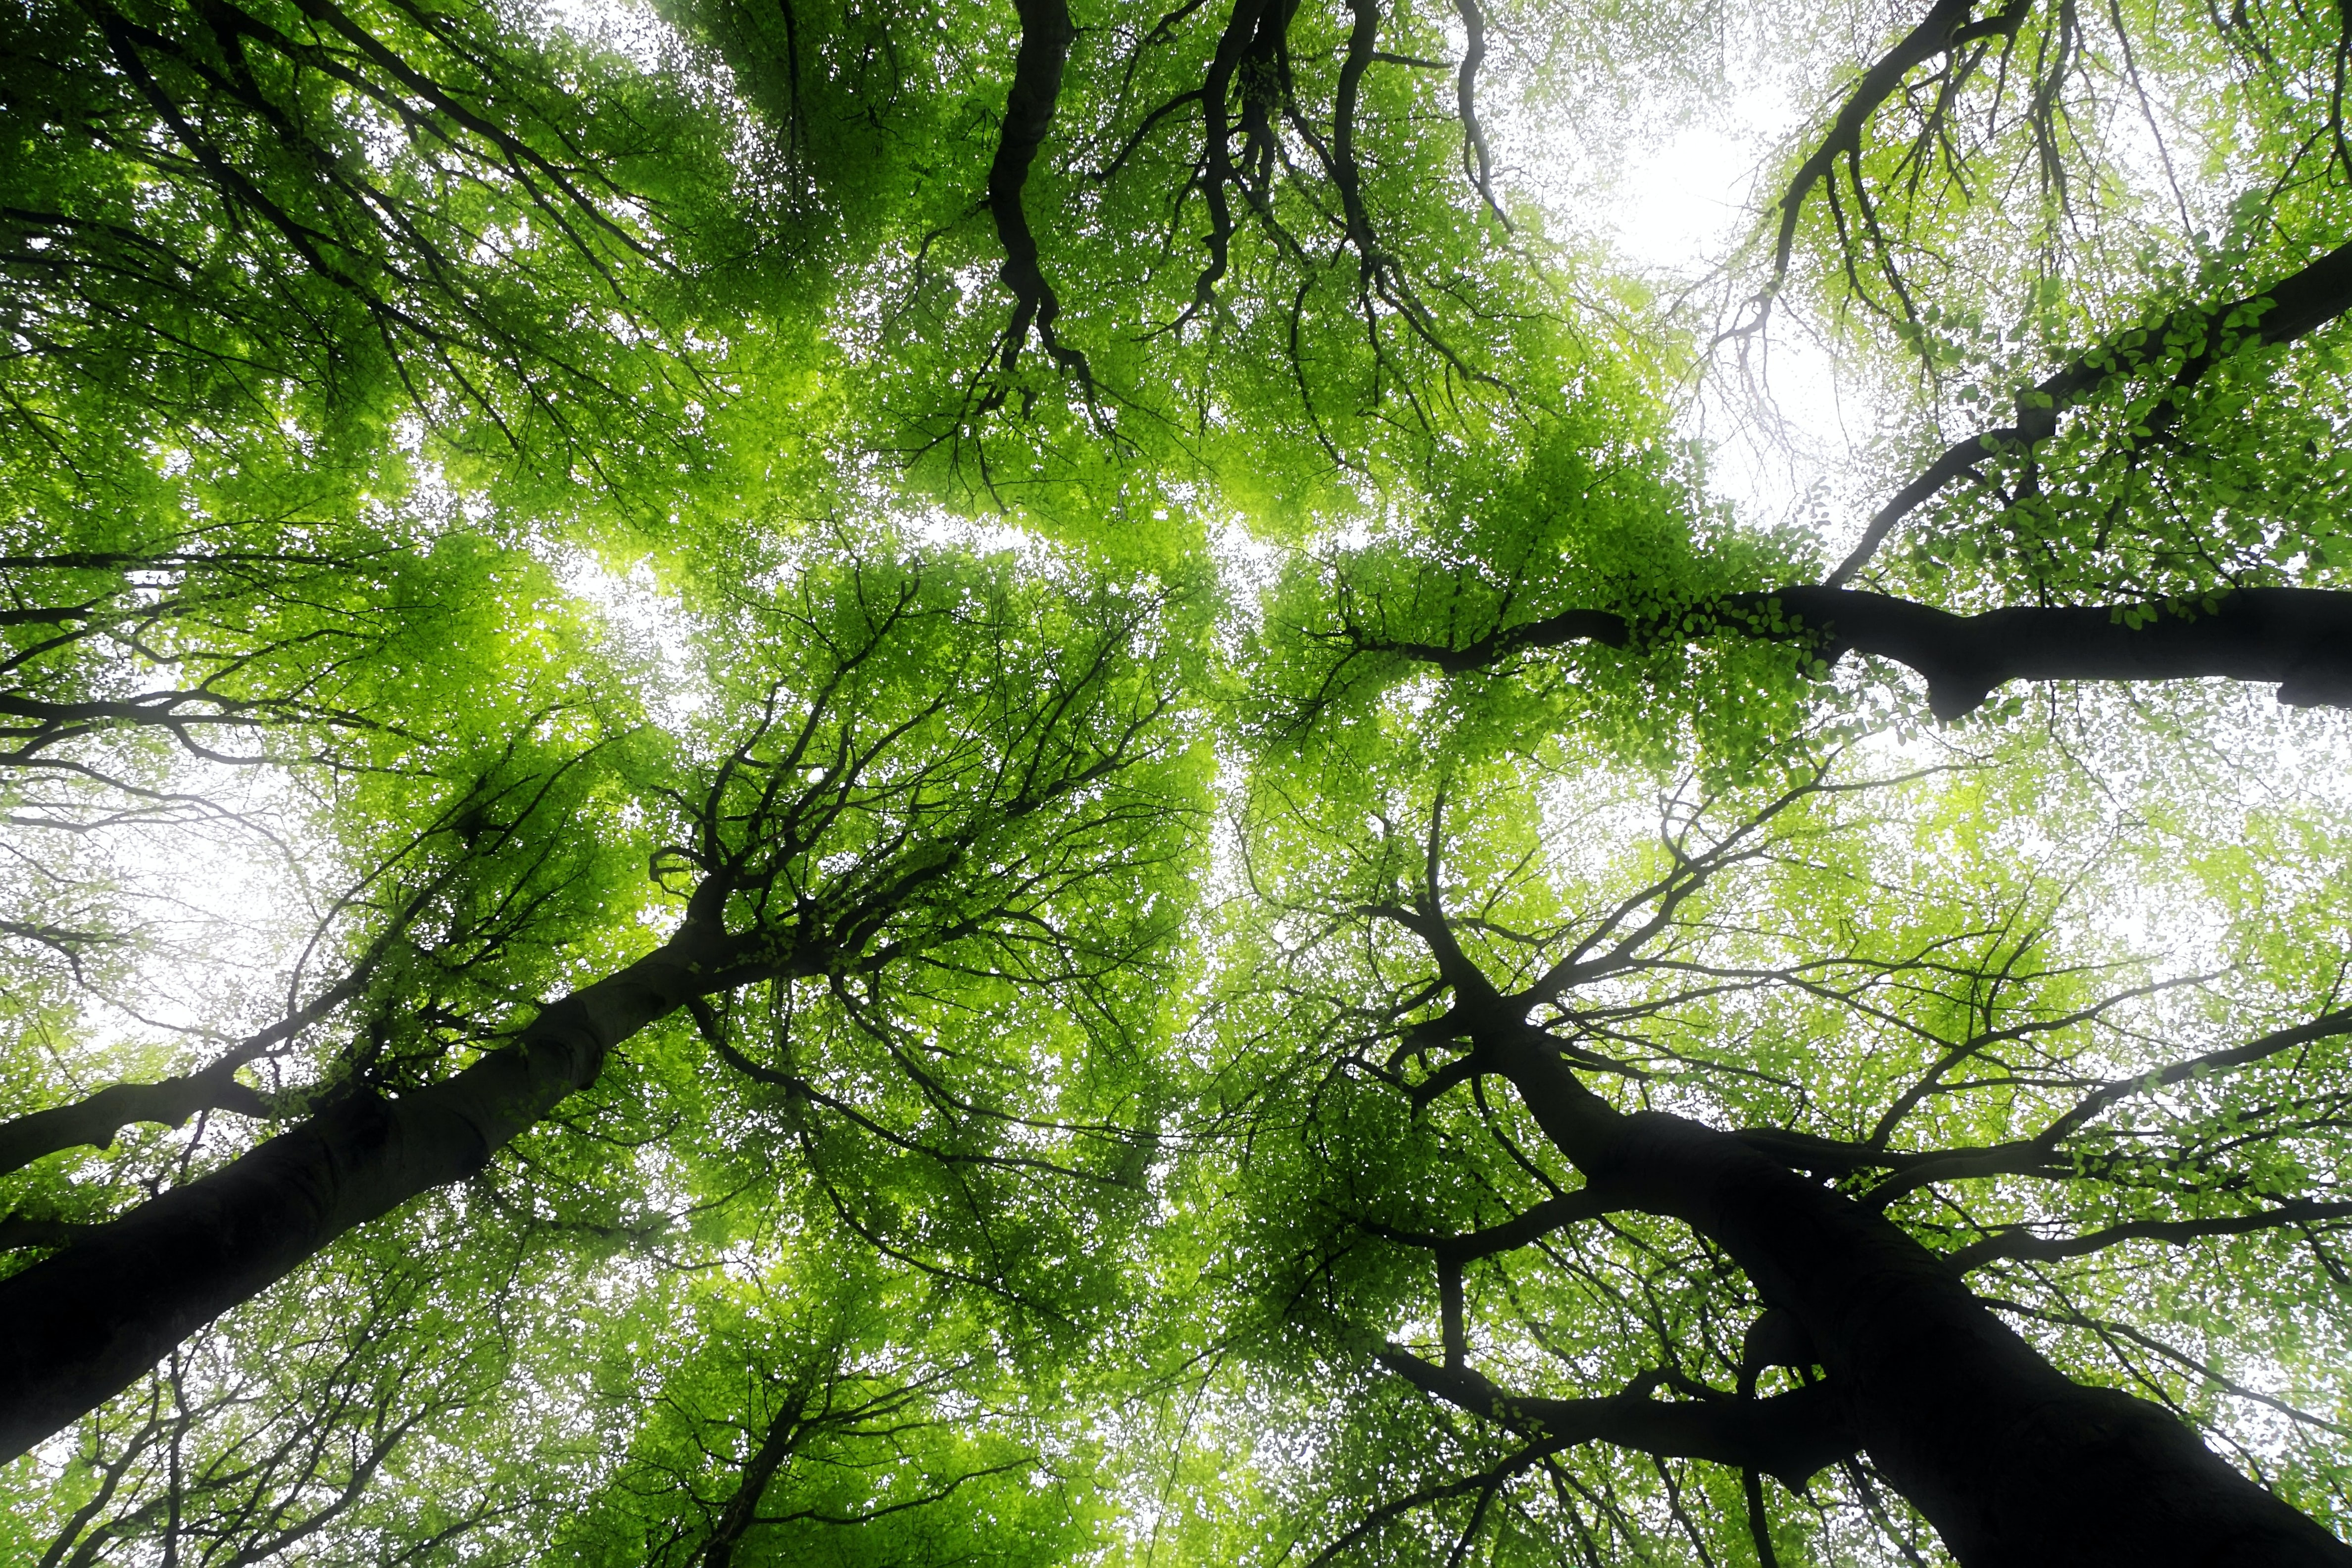 looking up at multiple green trees